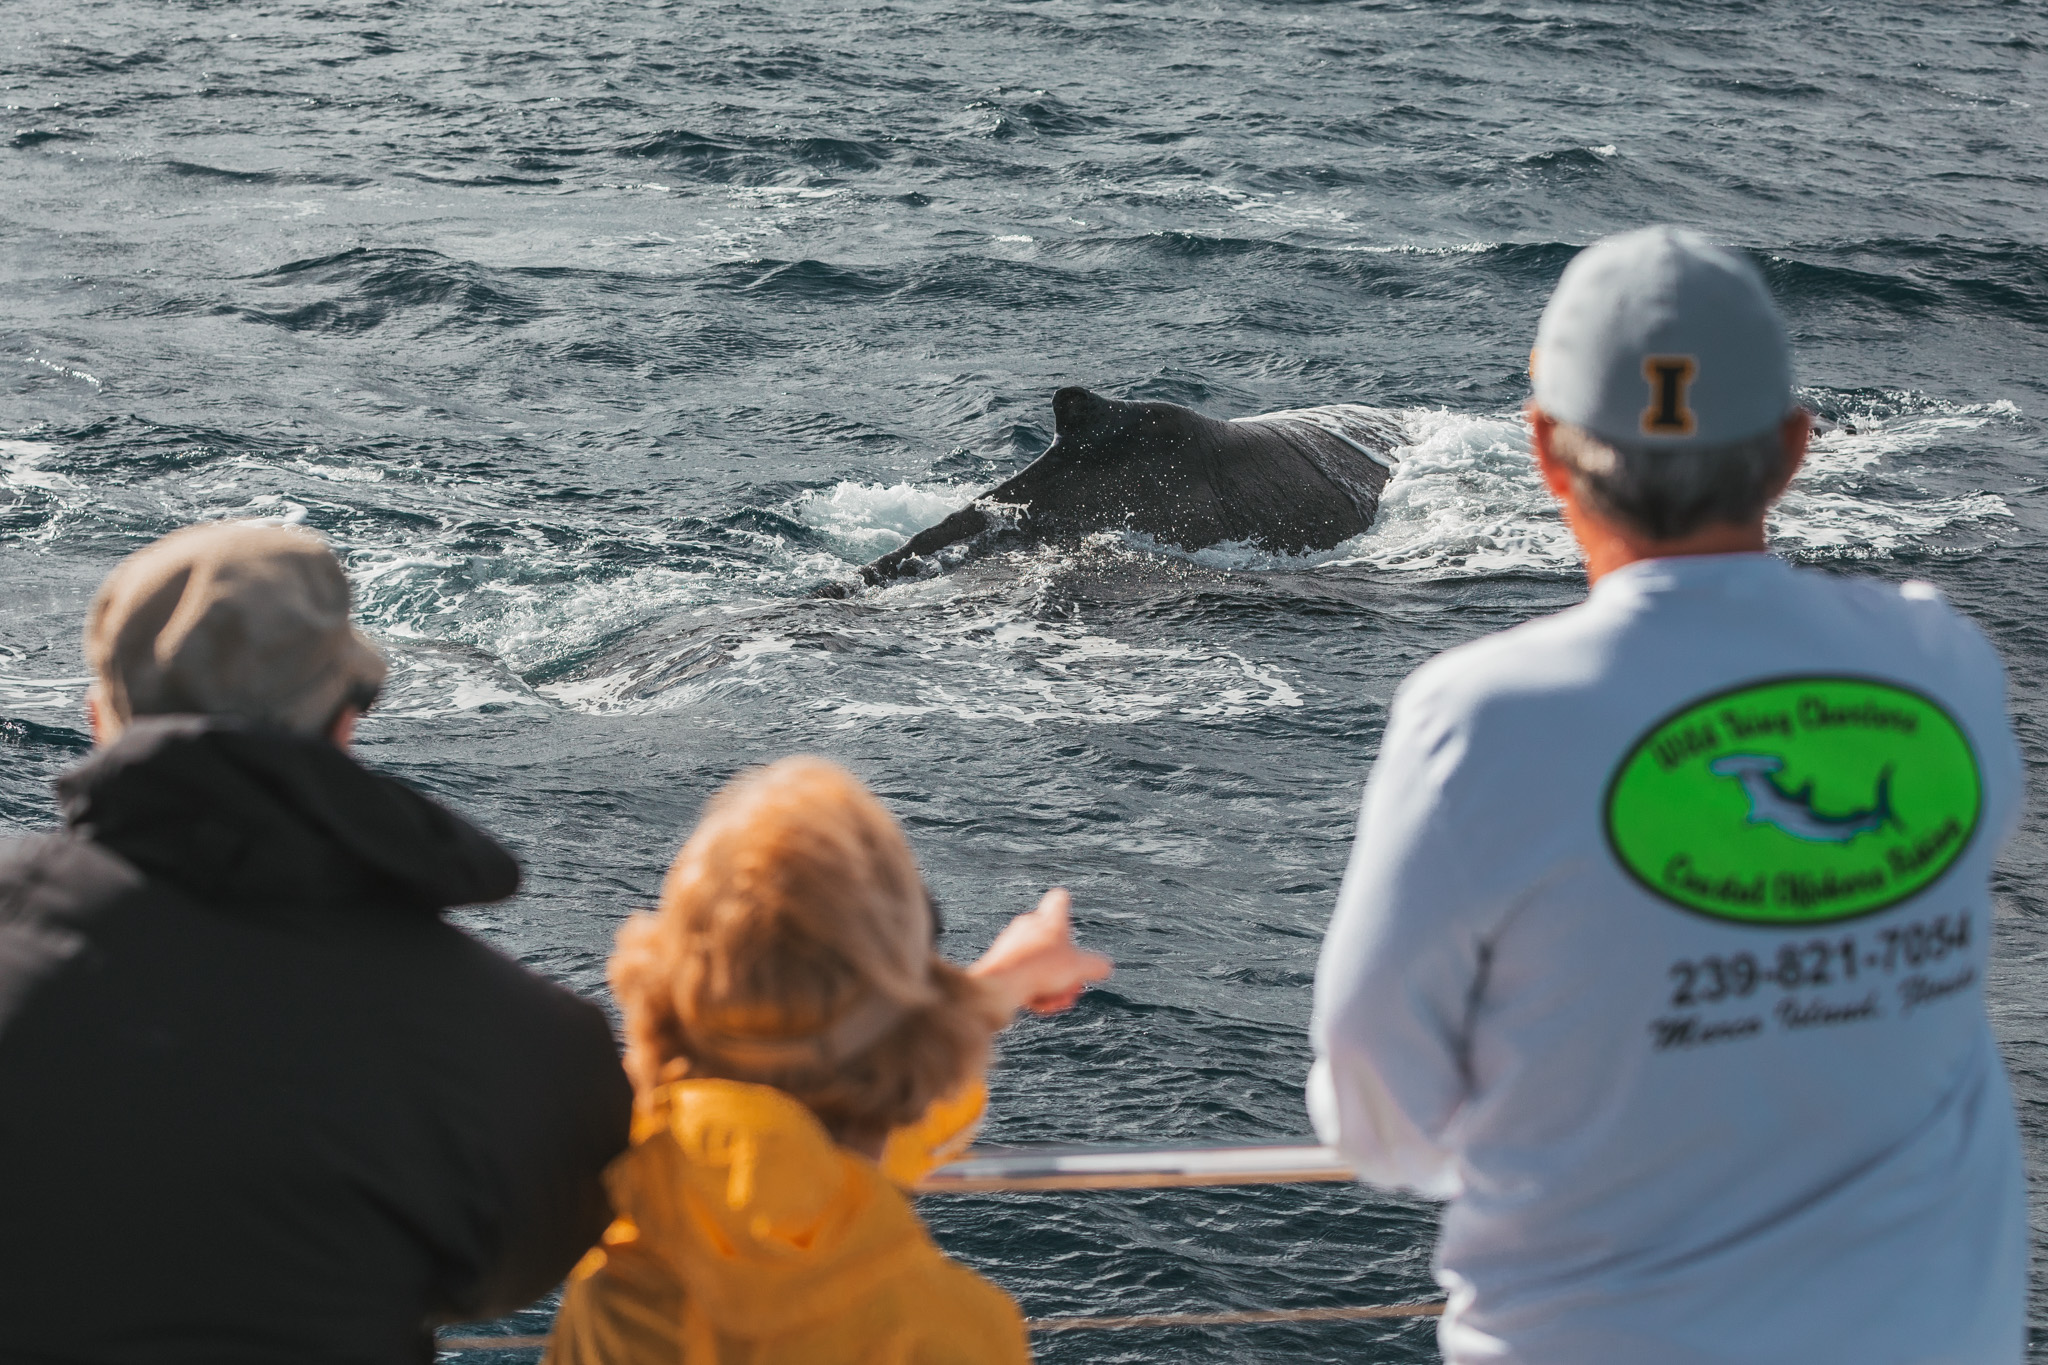 Whale watching  // 10 Things You Have to Do on the Big Island of Hawaii // www.readysetjetset.net #readysetjetset #hawaii #bigisland #blogpost #hawaiiguide